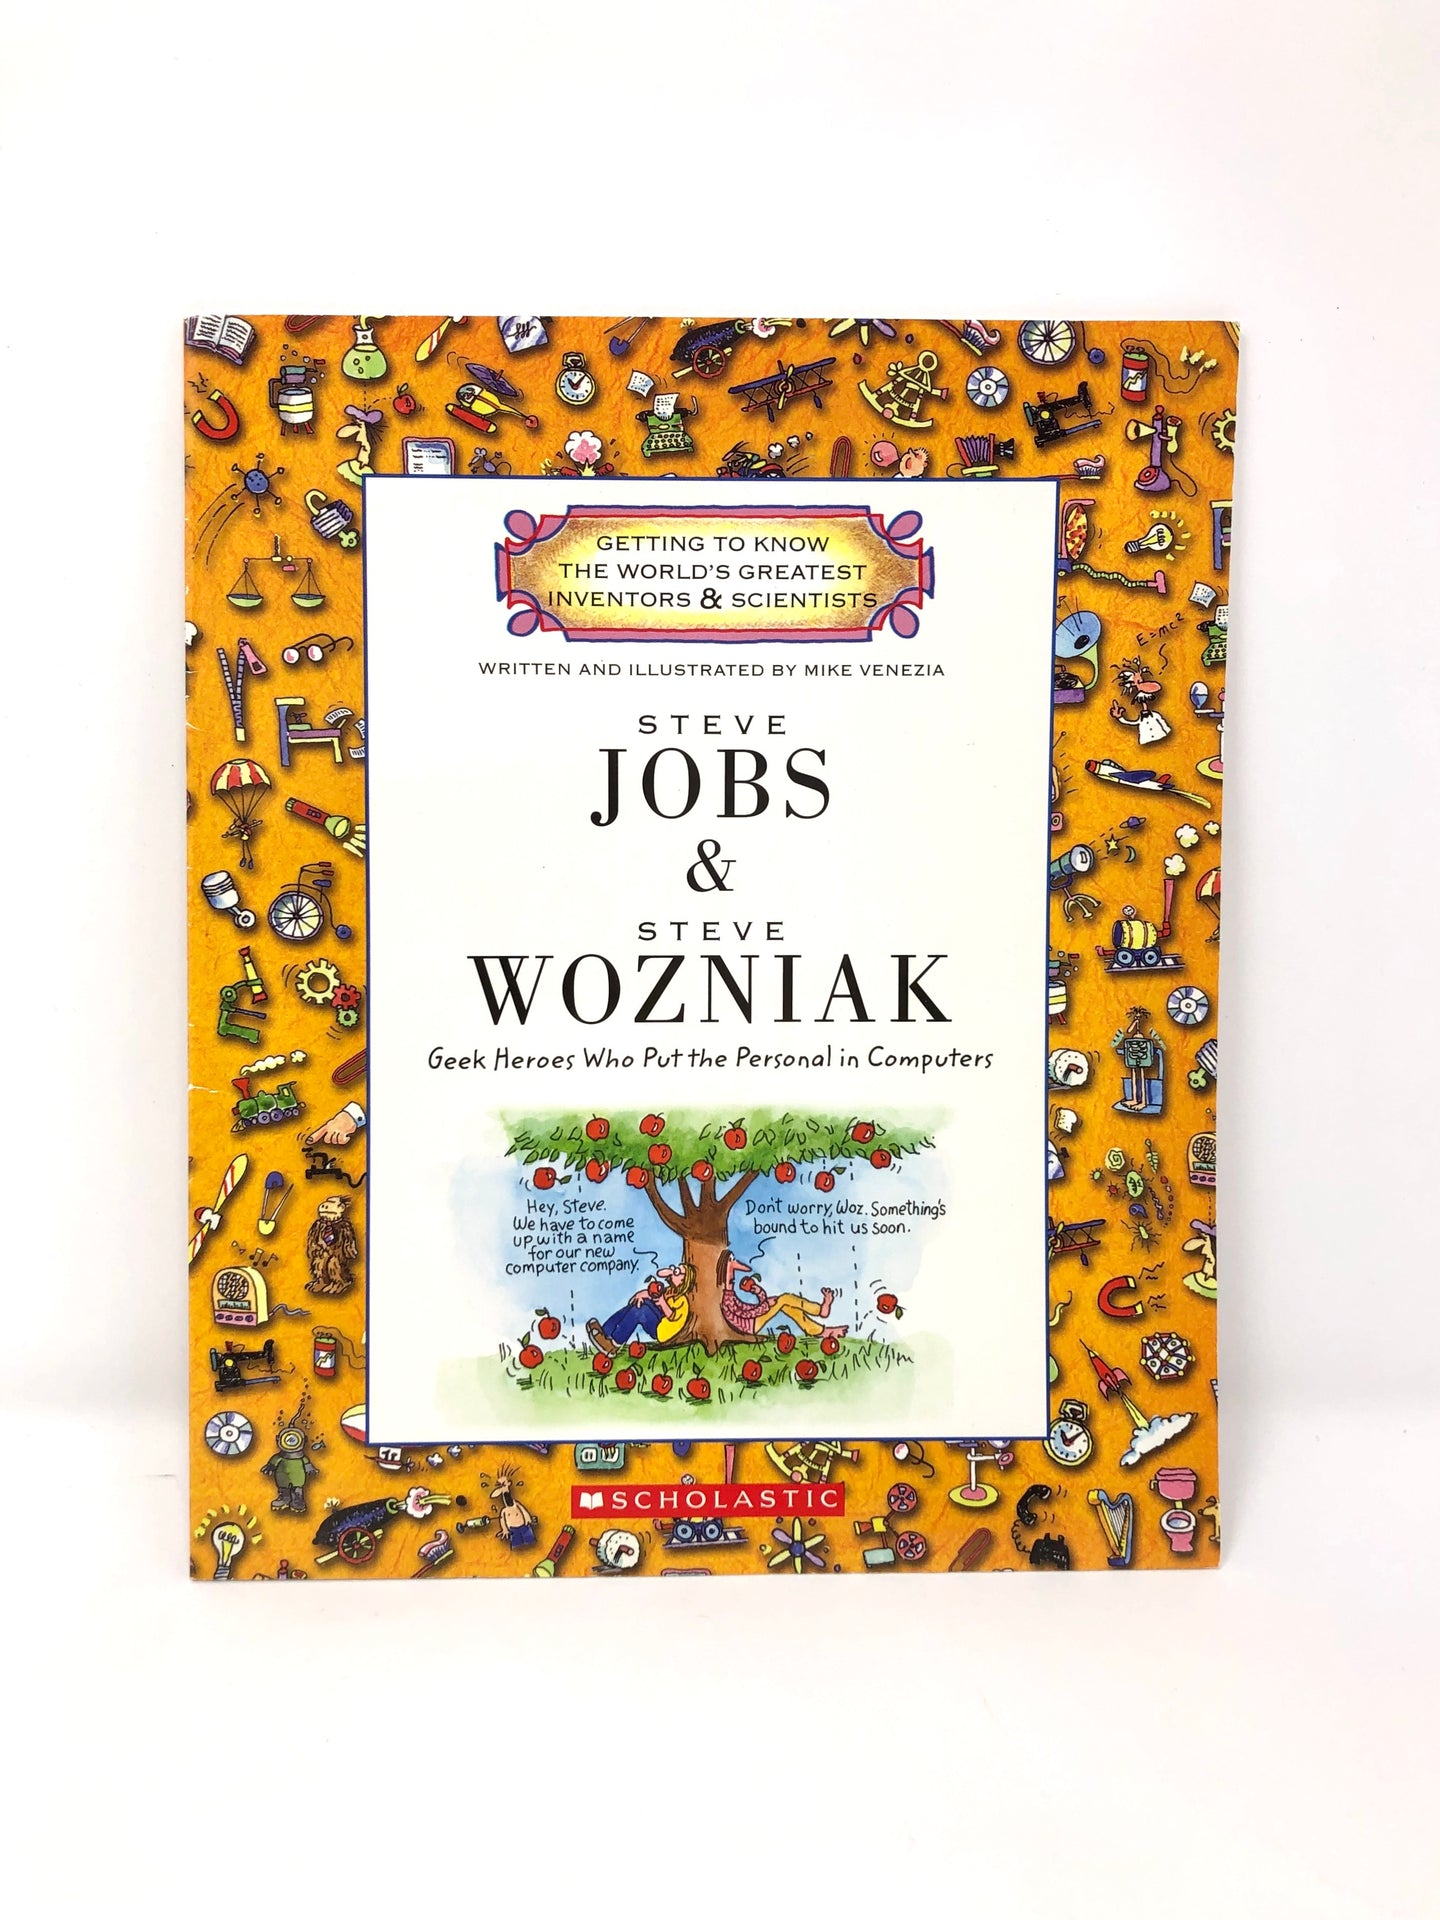 Steve Jobs & Steve Wozniak: Geek Heroes Who Put the Personal in Computers (Used-Like New) - Little Green Schoolhouse Books